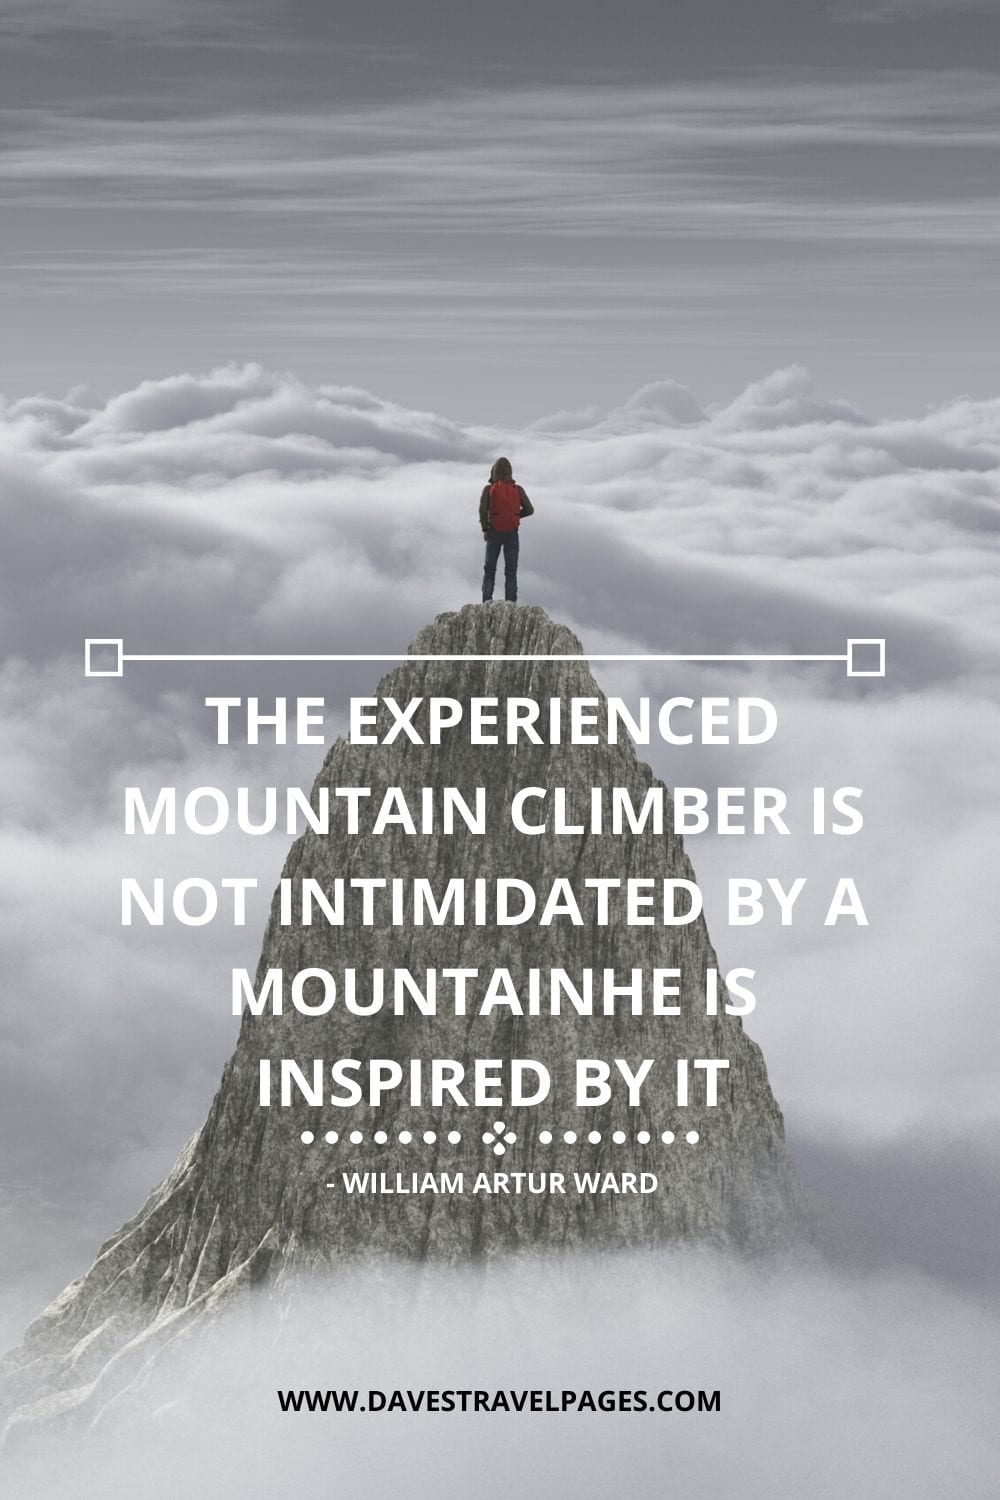 The experienced mountain climber is not intimidated by a mountainhe is inspired by it - William Artur Ward